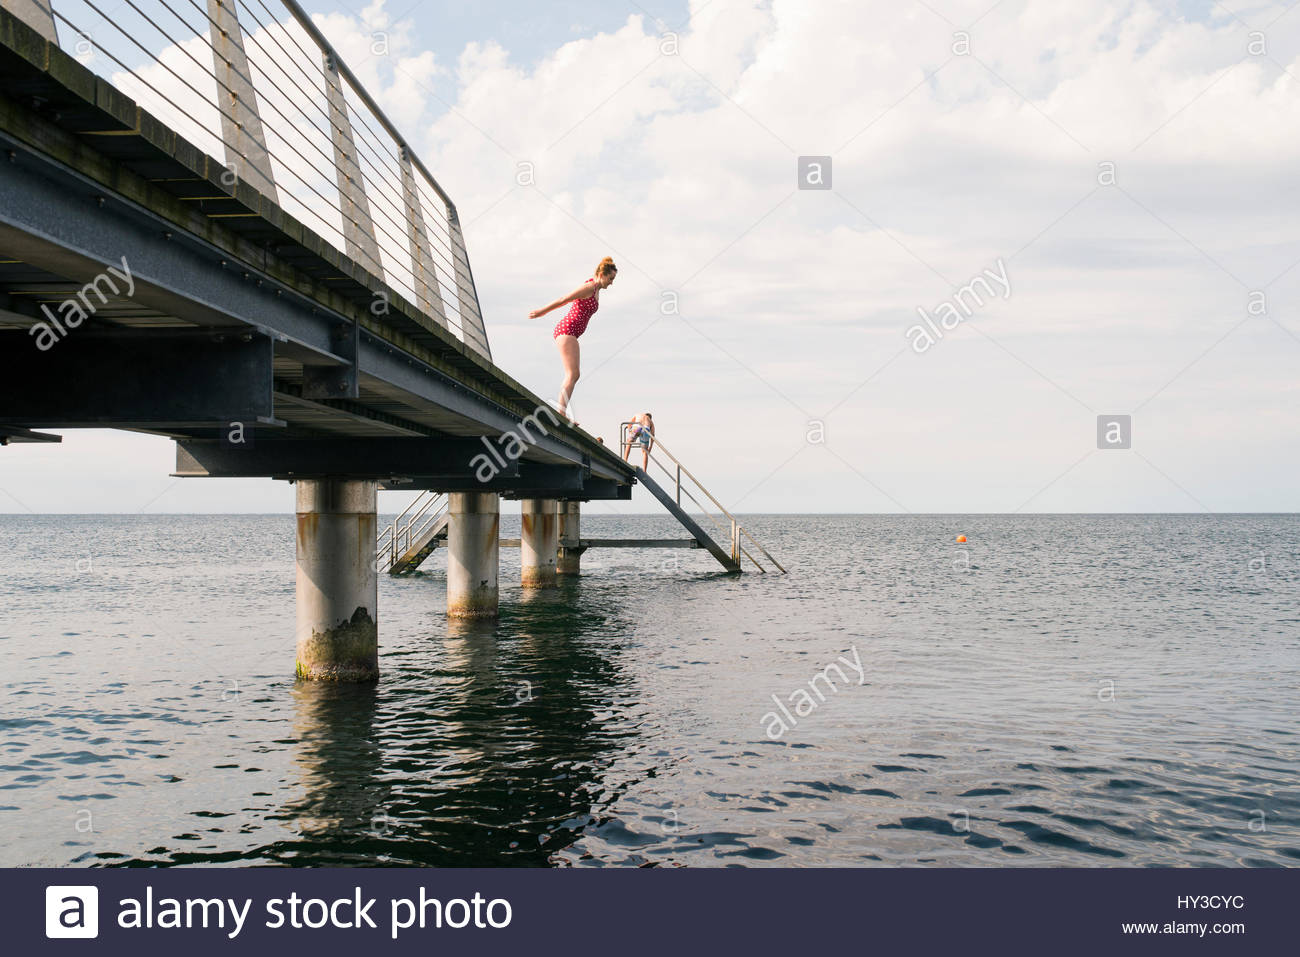 Sweden, Skane, Malmo, Woman jumping into water from pier - Stock Image